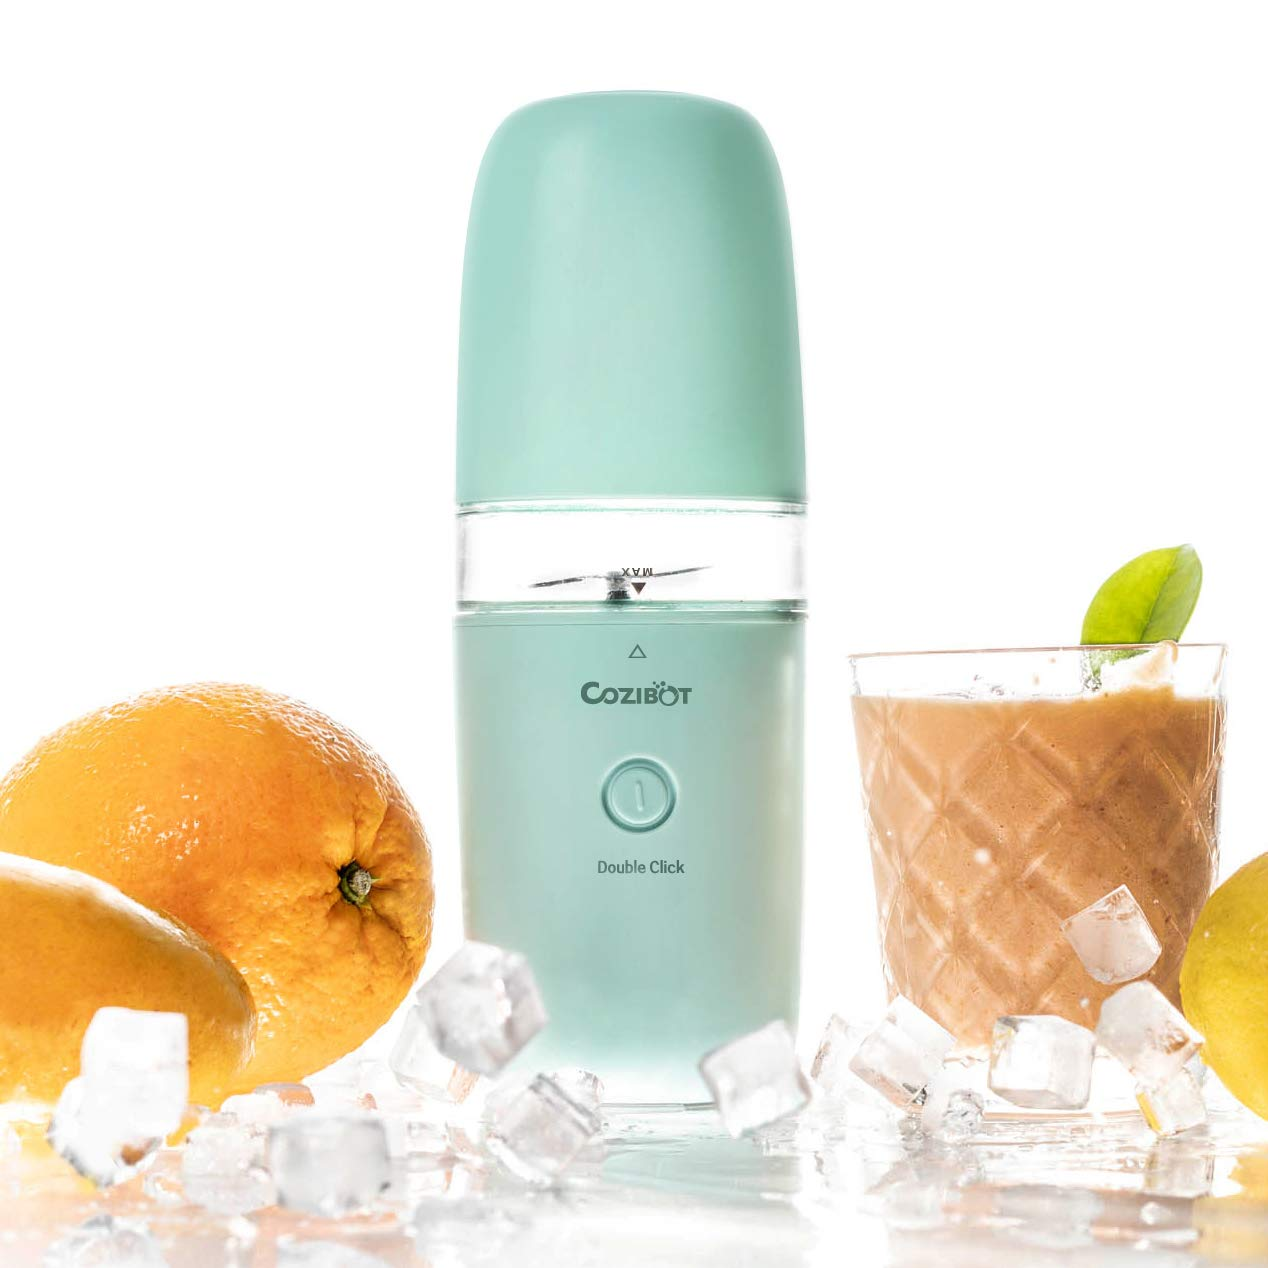 Portable Blender, Cozibot Travel Blender for Smoothies and Shakes, Rechargeable USB Blender for On The Go, Single-Serve Travel Blender, Personal Blender Fruit Juicer Cup with Ice Tray(FDA BPA-Free) by Cozibot (Image #1)